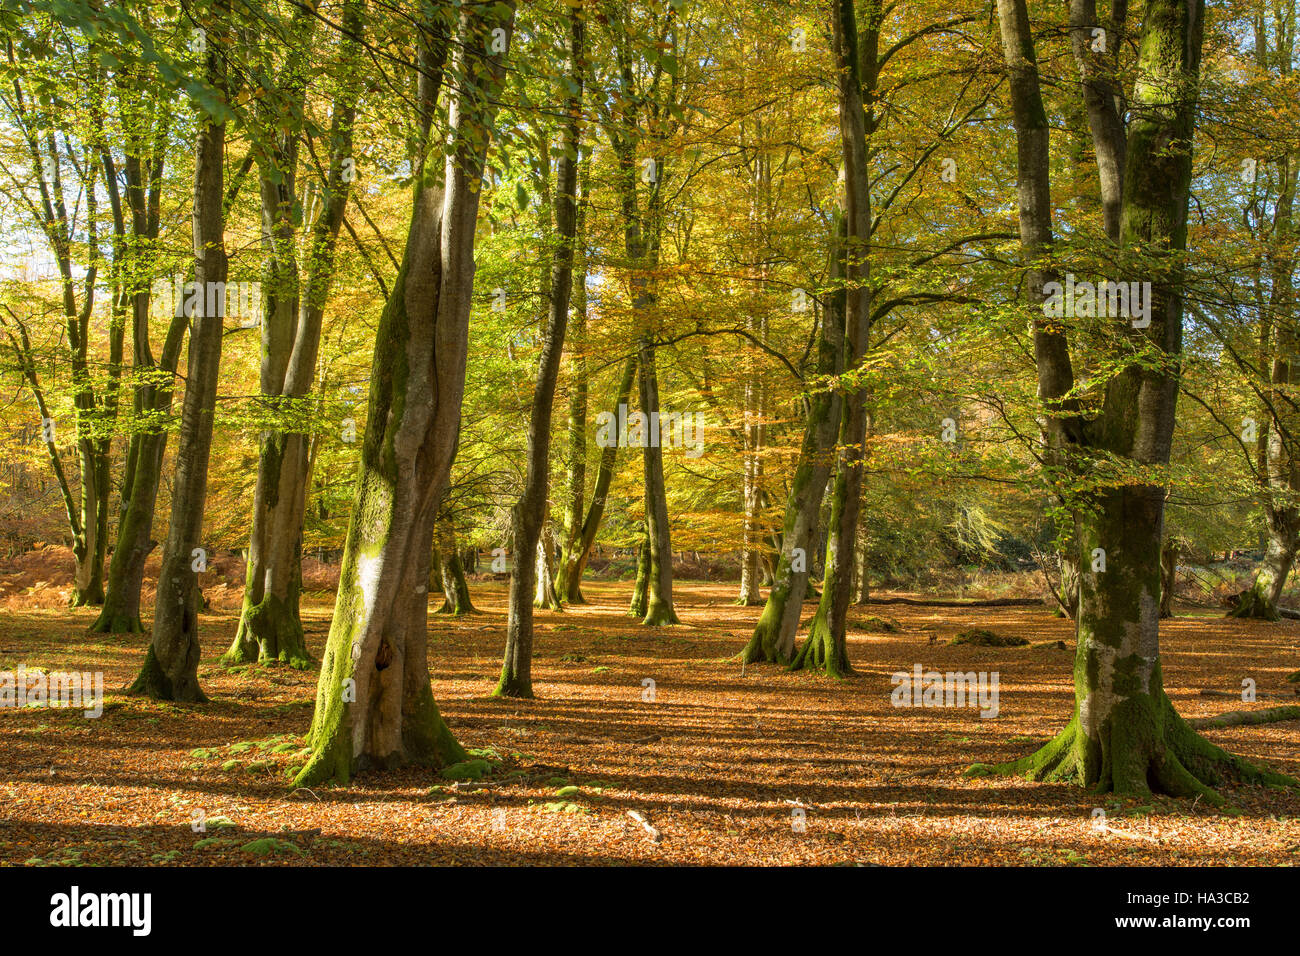 New Forest in autumn, Hampshire, England, UK - Stock Image